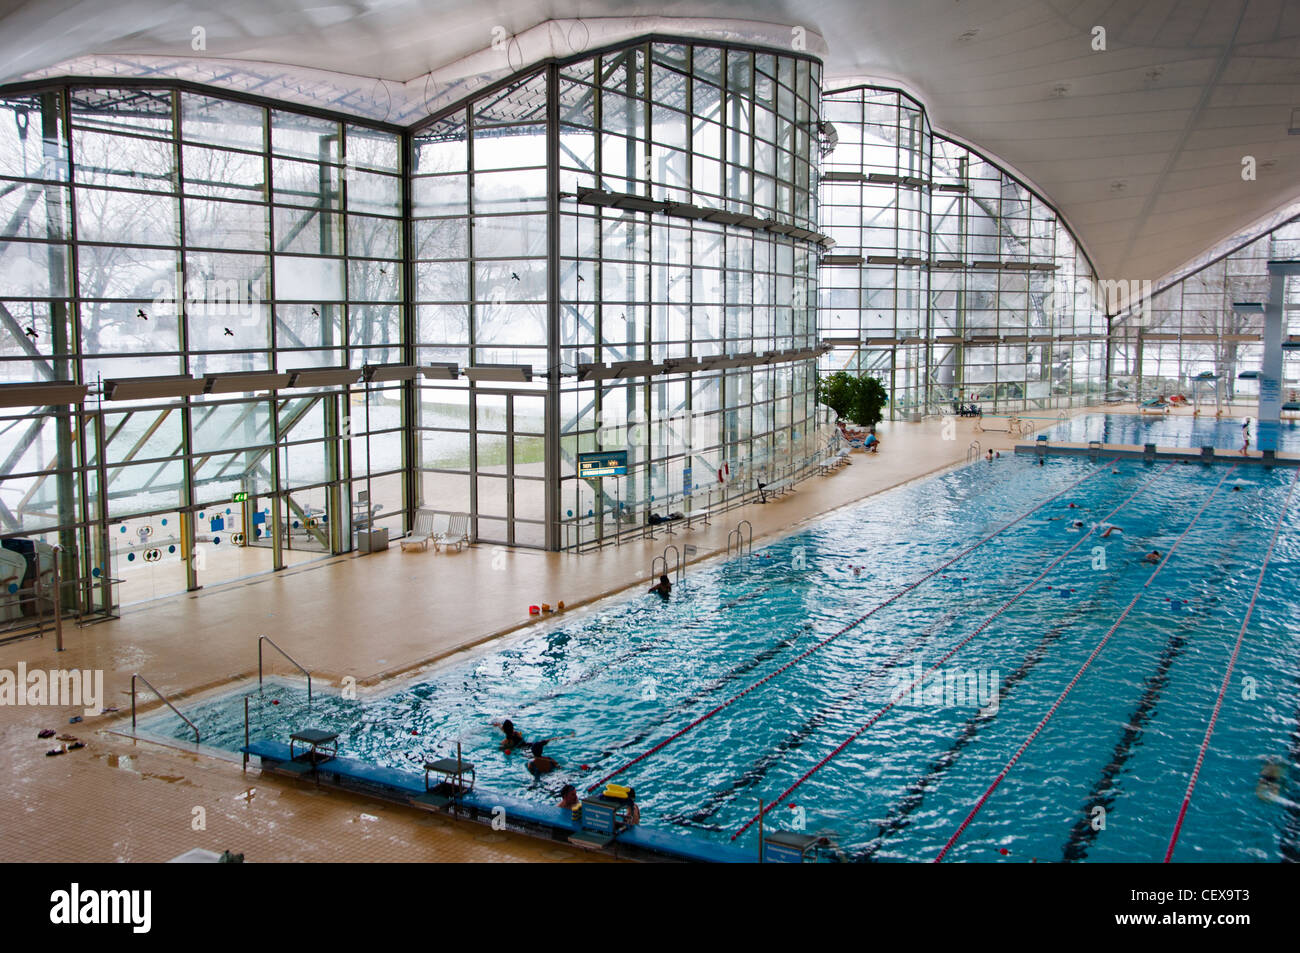 Munich Olympic Swimming Pool Now Open To The Public Munich Germany Stock Photo Royalty Free